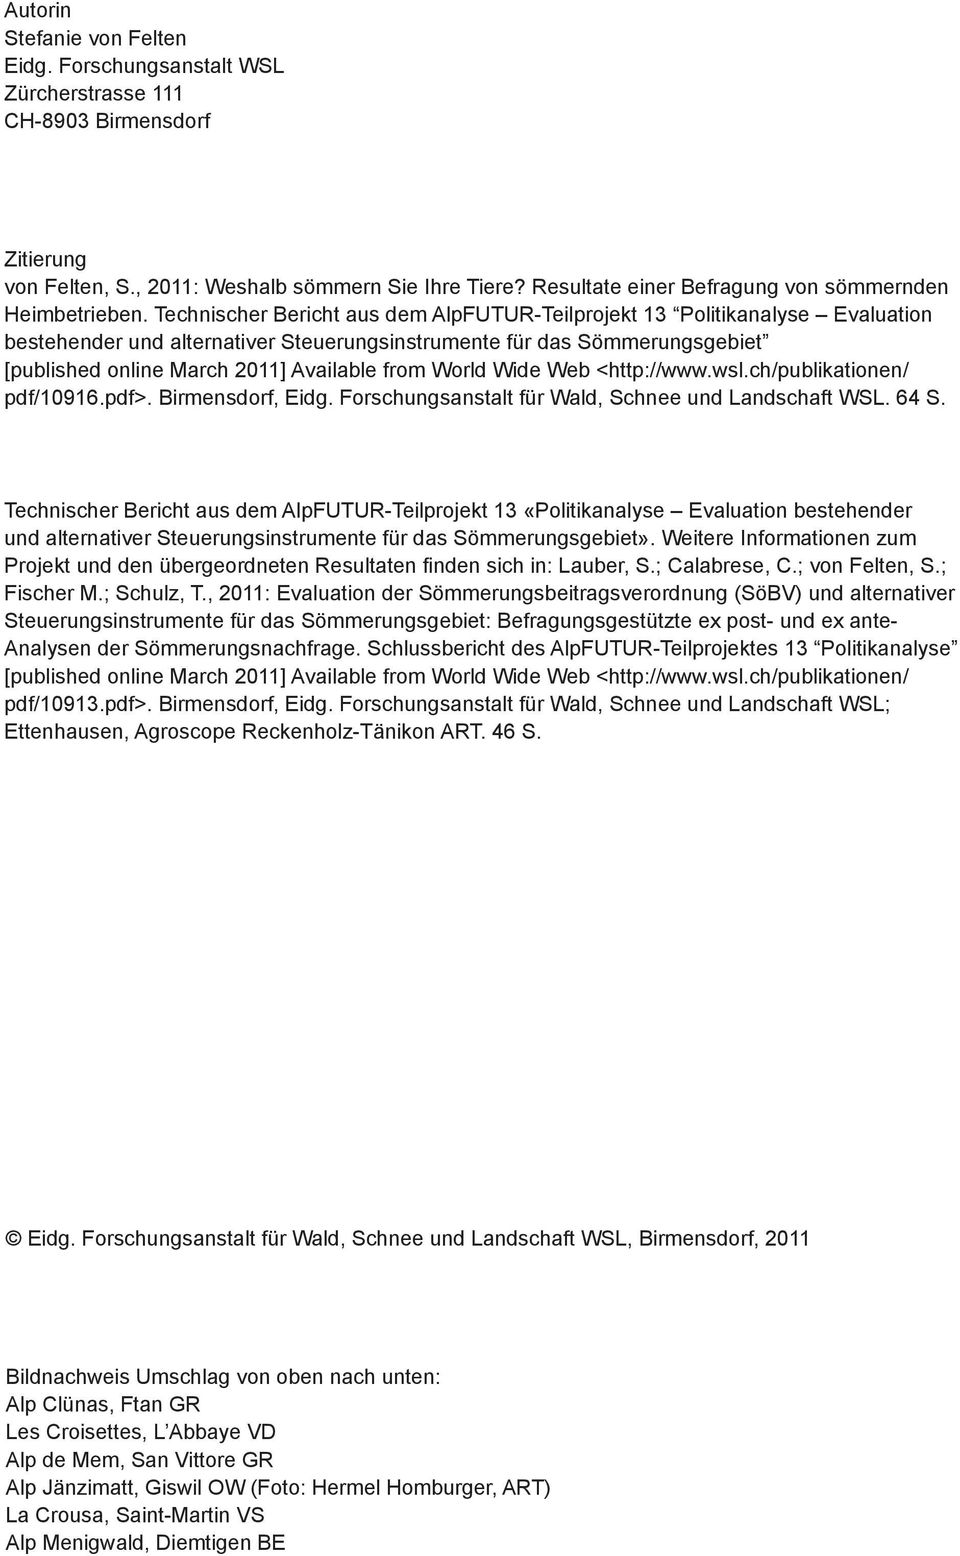 Technischer Bericht aus dem AlpFUTUR-Teilprojekt 13 Politikanalyse Evaluation bestehender und alternativer Steuerungsinstrumente für das Sömmerungsgebiet [published online March 211] Available from